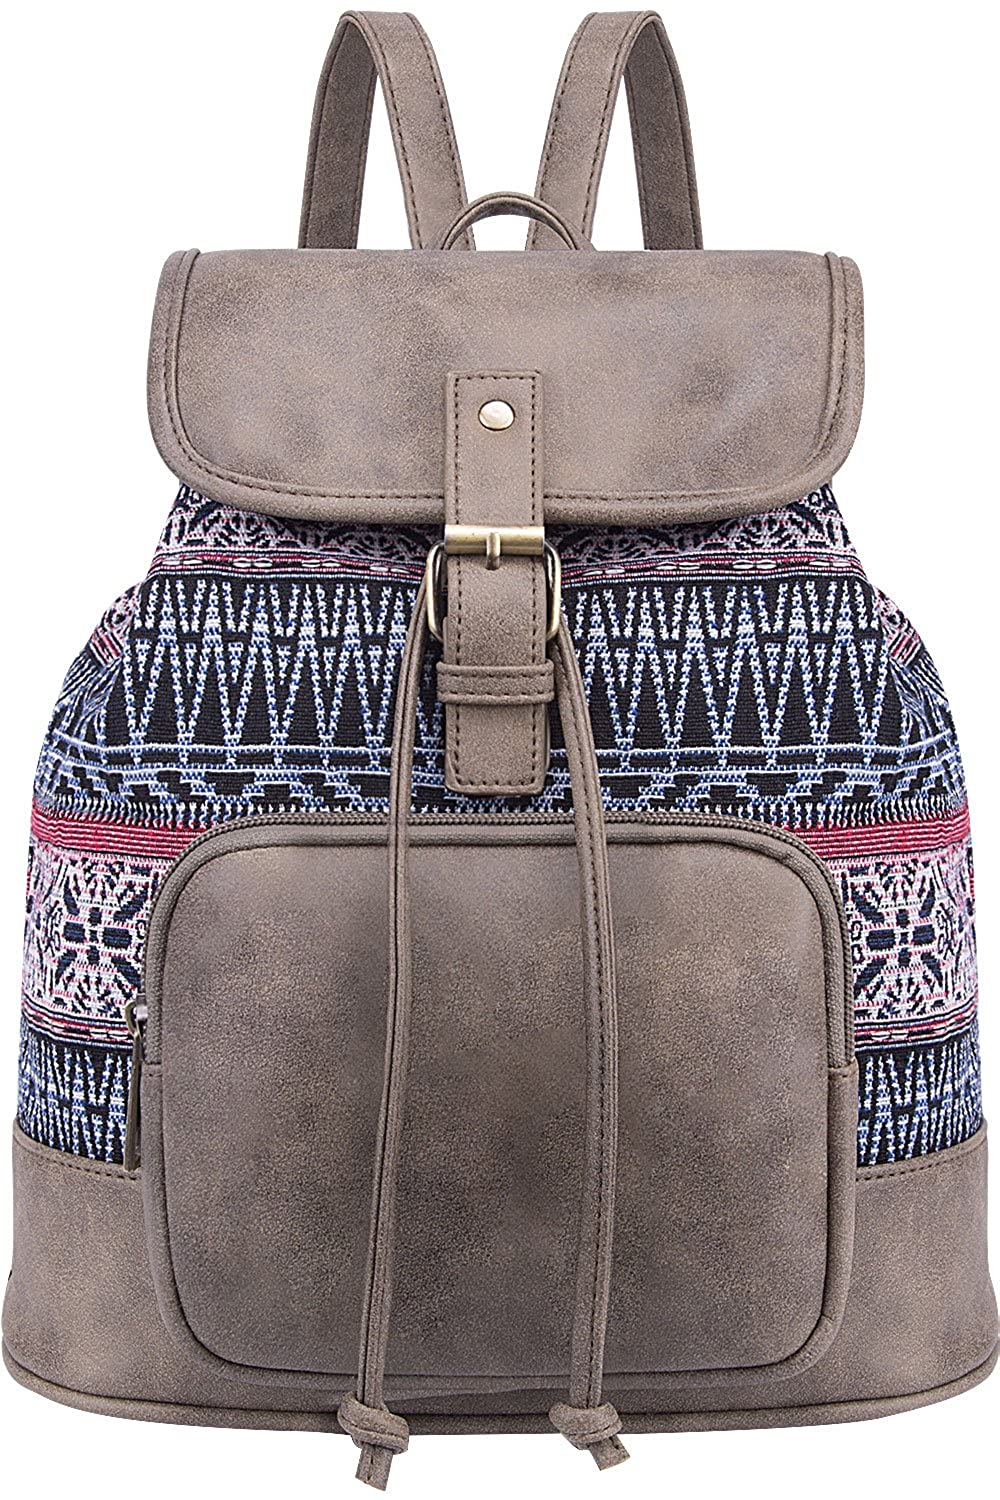 Lily Queen Fashion Small Purse Backpack Lightweight for Women and Teen Girls Colorful LQ-1070